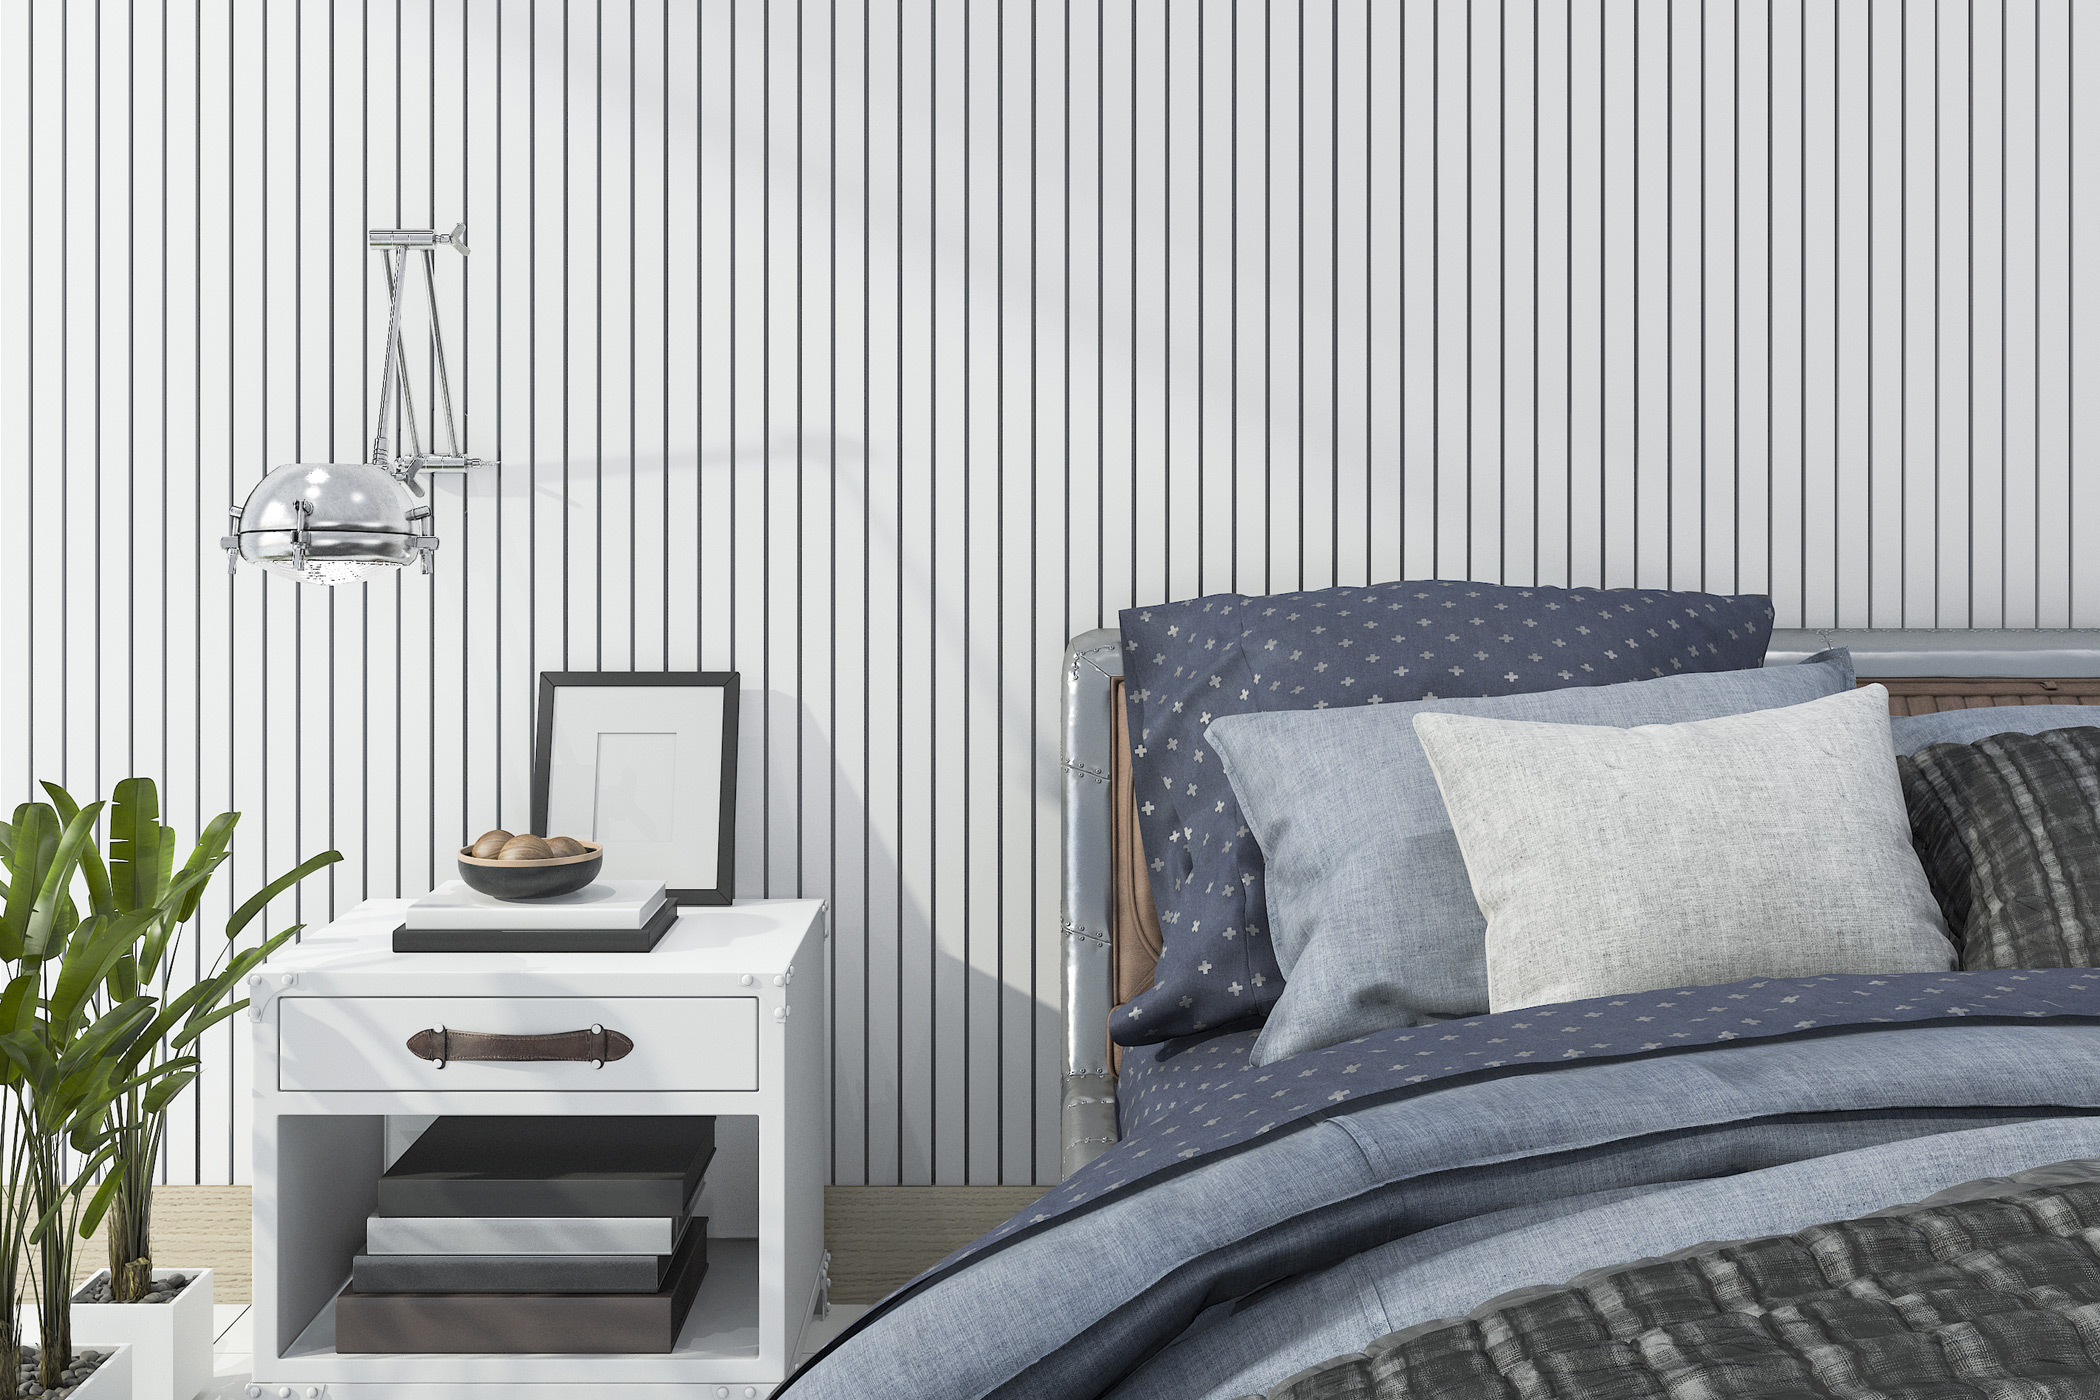 a bed and side table decorated neatly in front of the bold vertical striped wallpaper